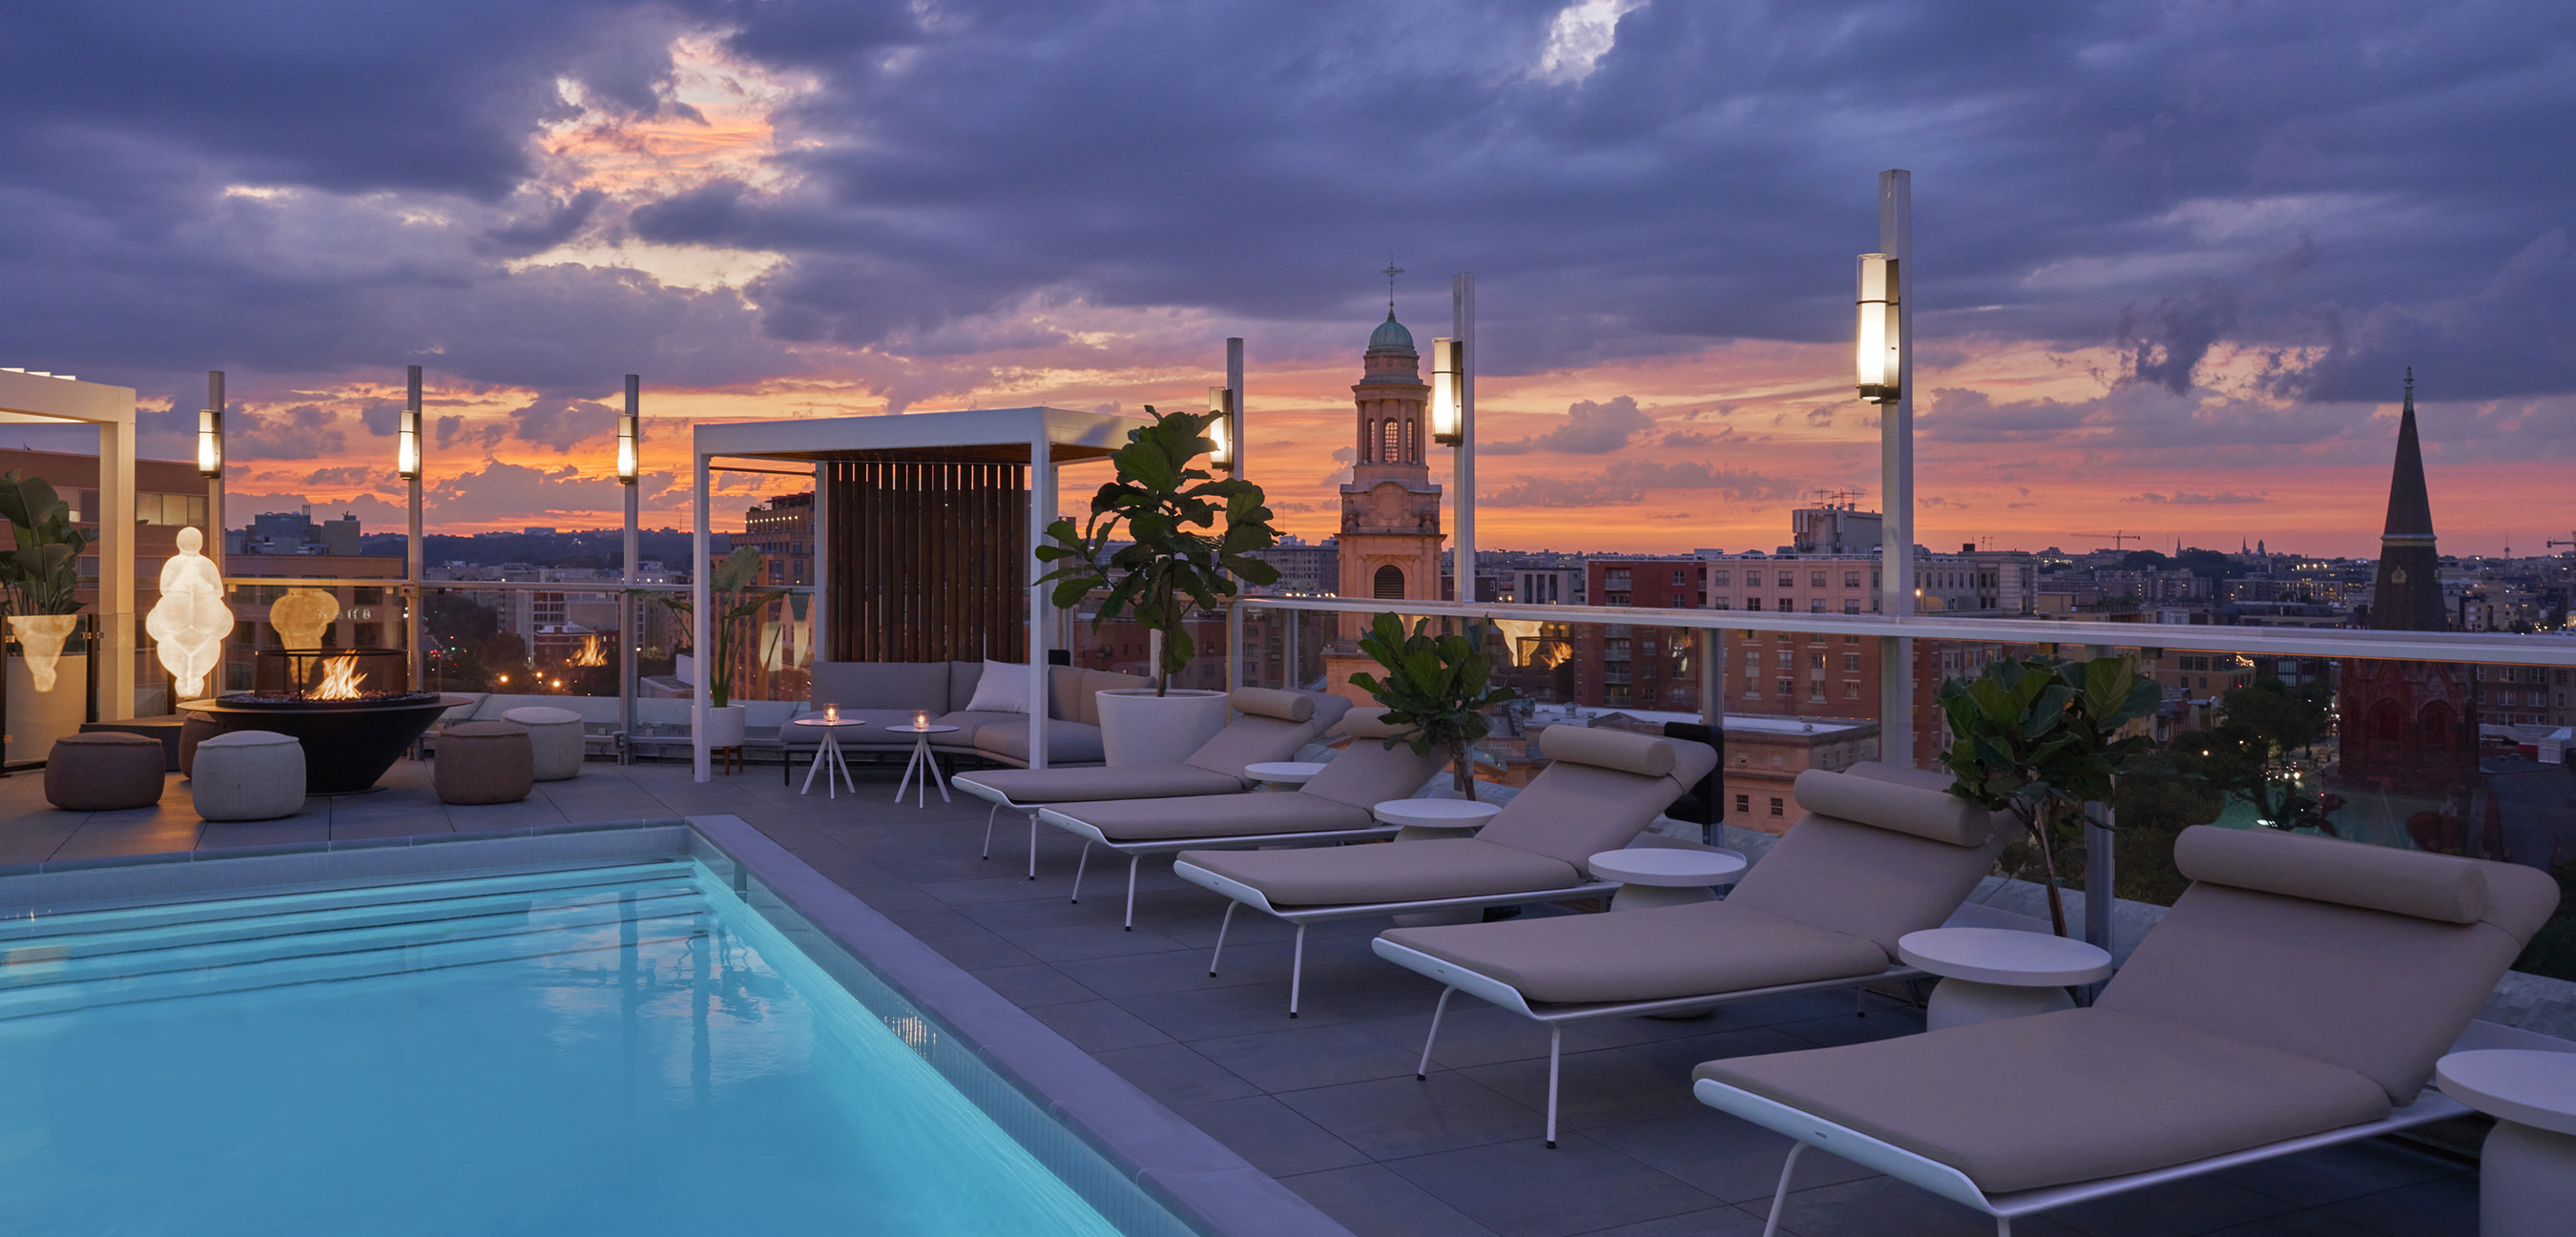 Hedy's Rooftop, Hotel Zena's upscale rooftop lounge, will be coming to in Spring 2021. Photo Credit: Mike Schwartz Photography